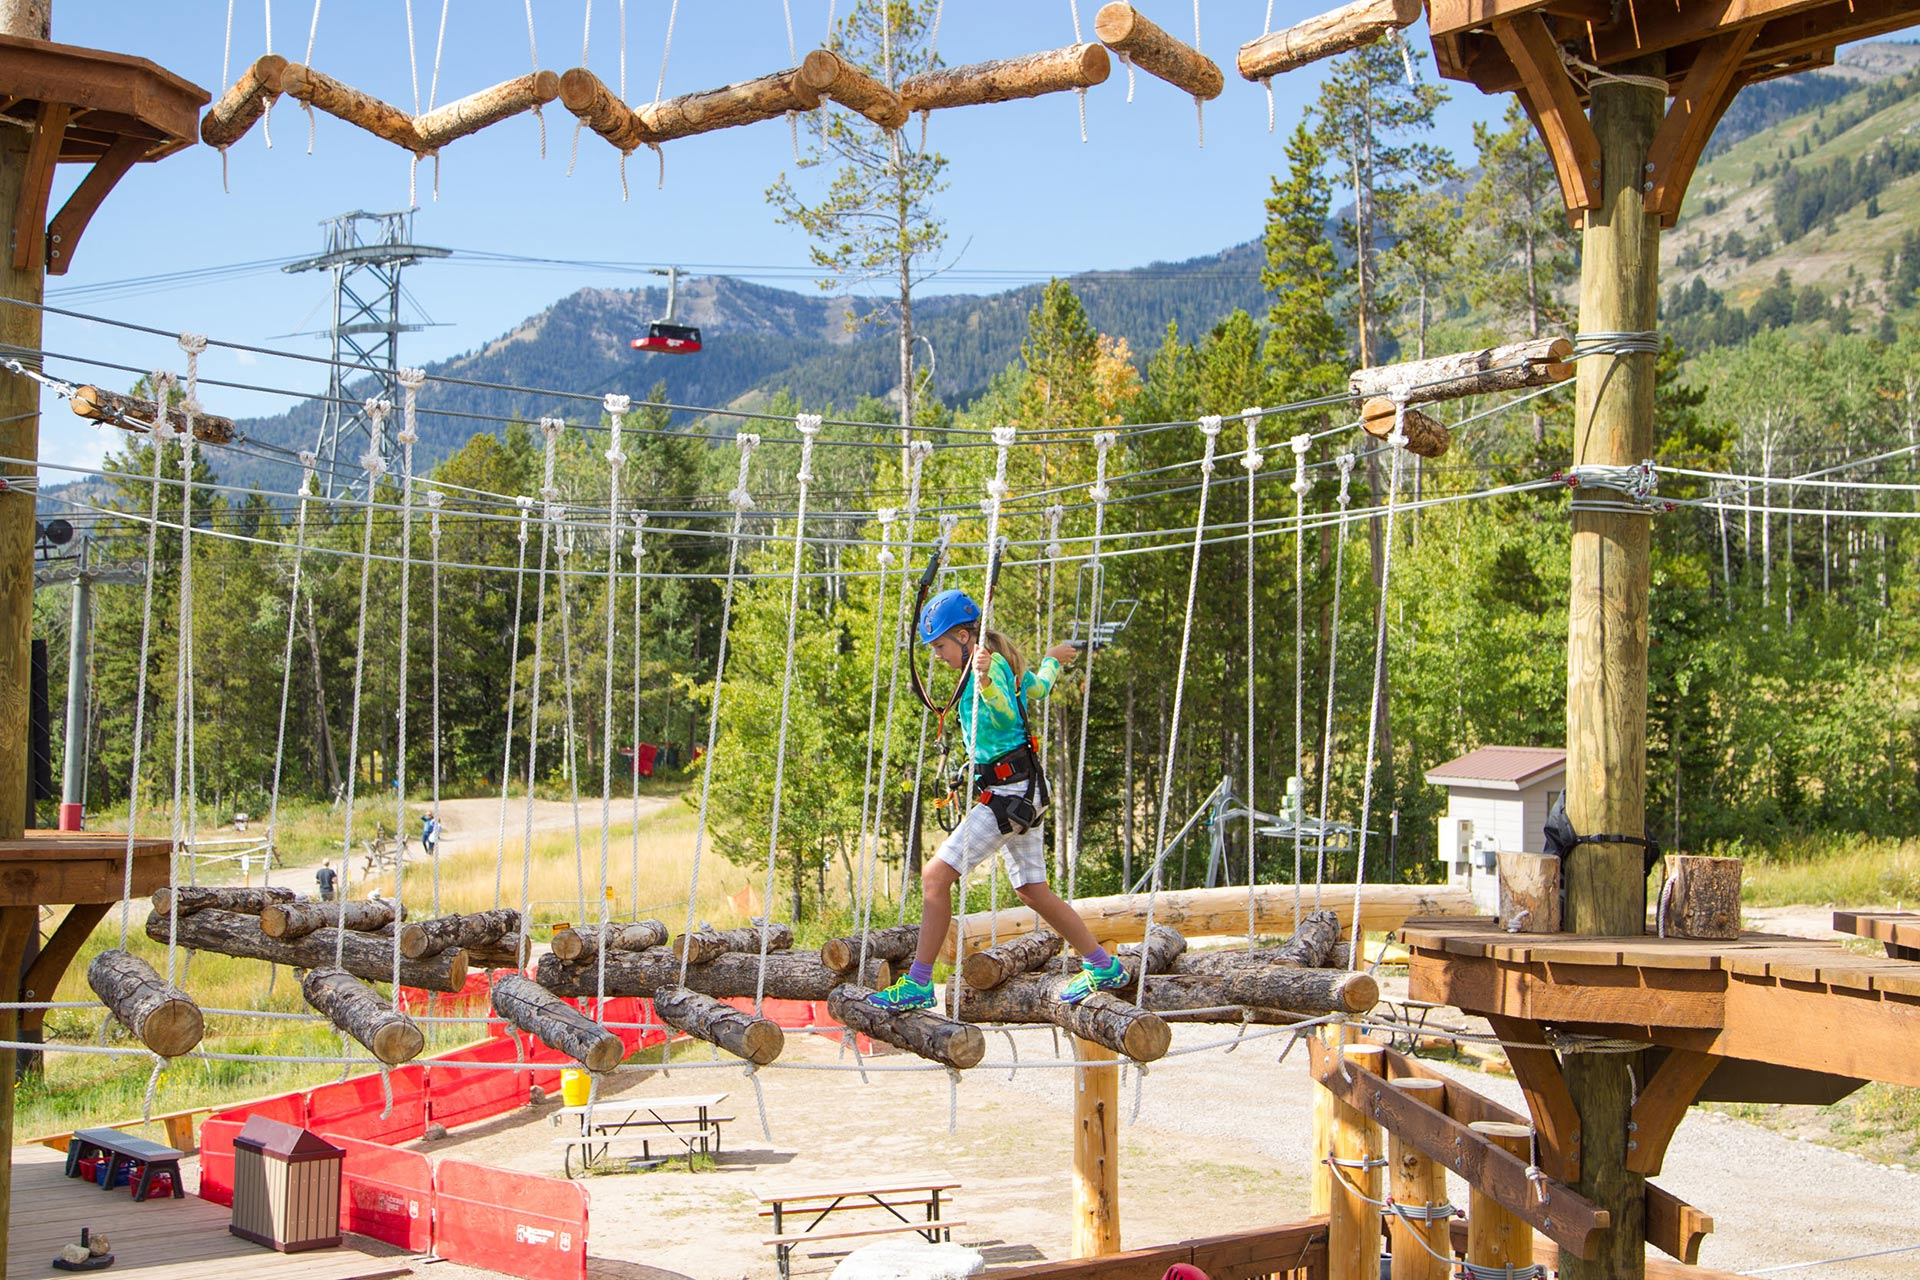 Adventure course at Jackson Hole Mountain Resort in Wyoming